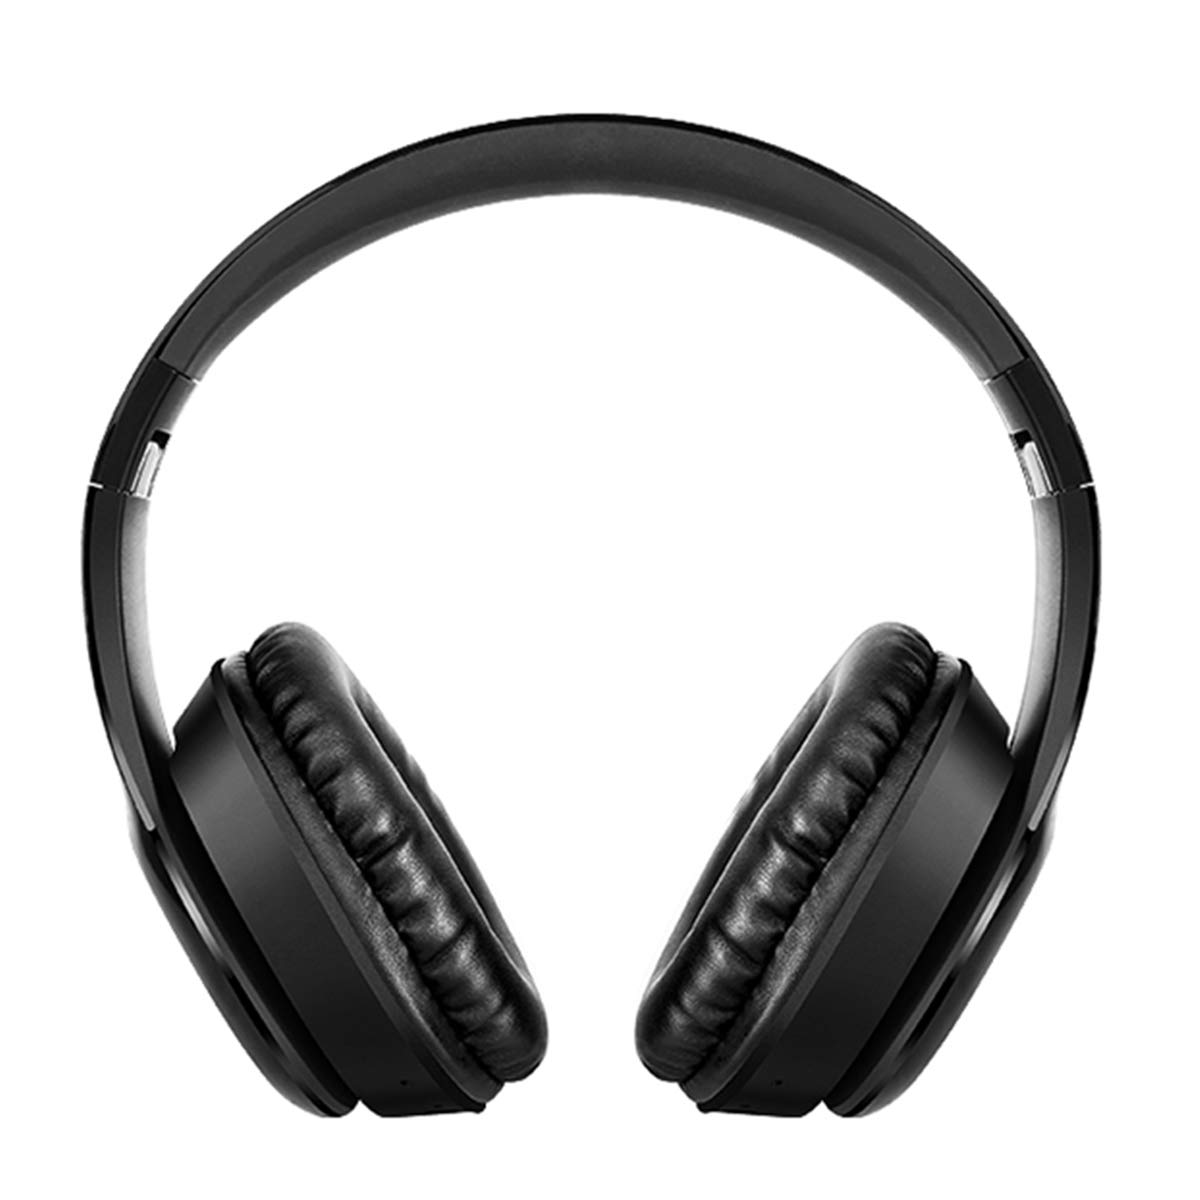 Yuehuam Bluetooth Headphones Over Ear BT5.0 Wireless Over-Ear Headphone Rechargeable HiFi Stereo Headset Foldable Stereo Earphone Super Bass Headset w/Mic (Black)